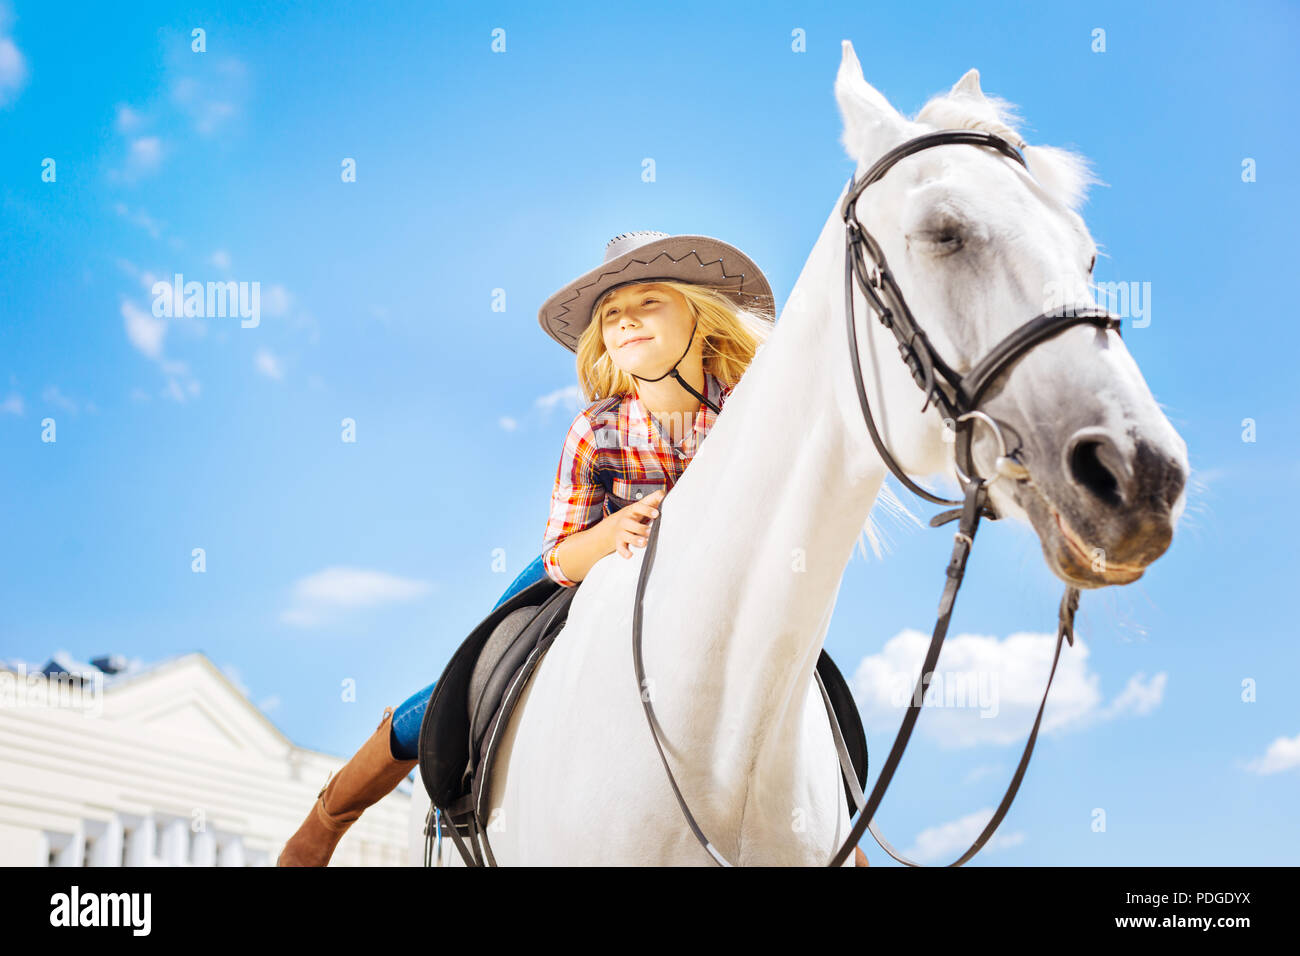 Blonde-haired cowboy girl appuyée sur son cheval de course Photo Stock